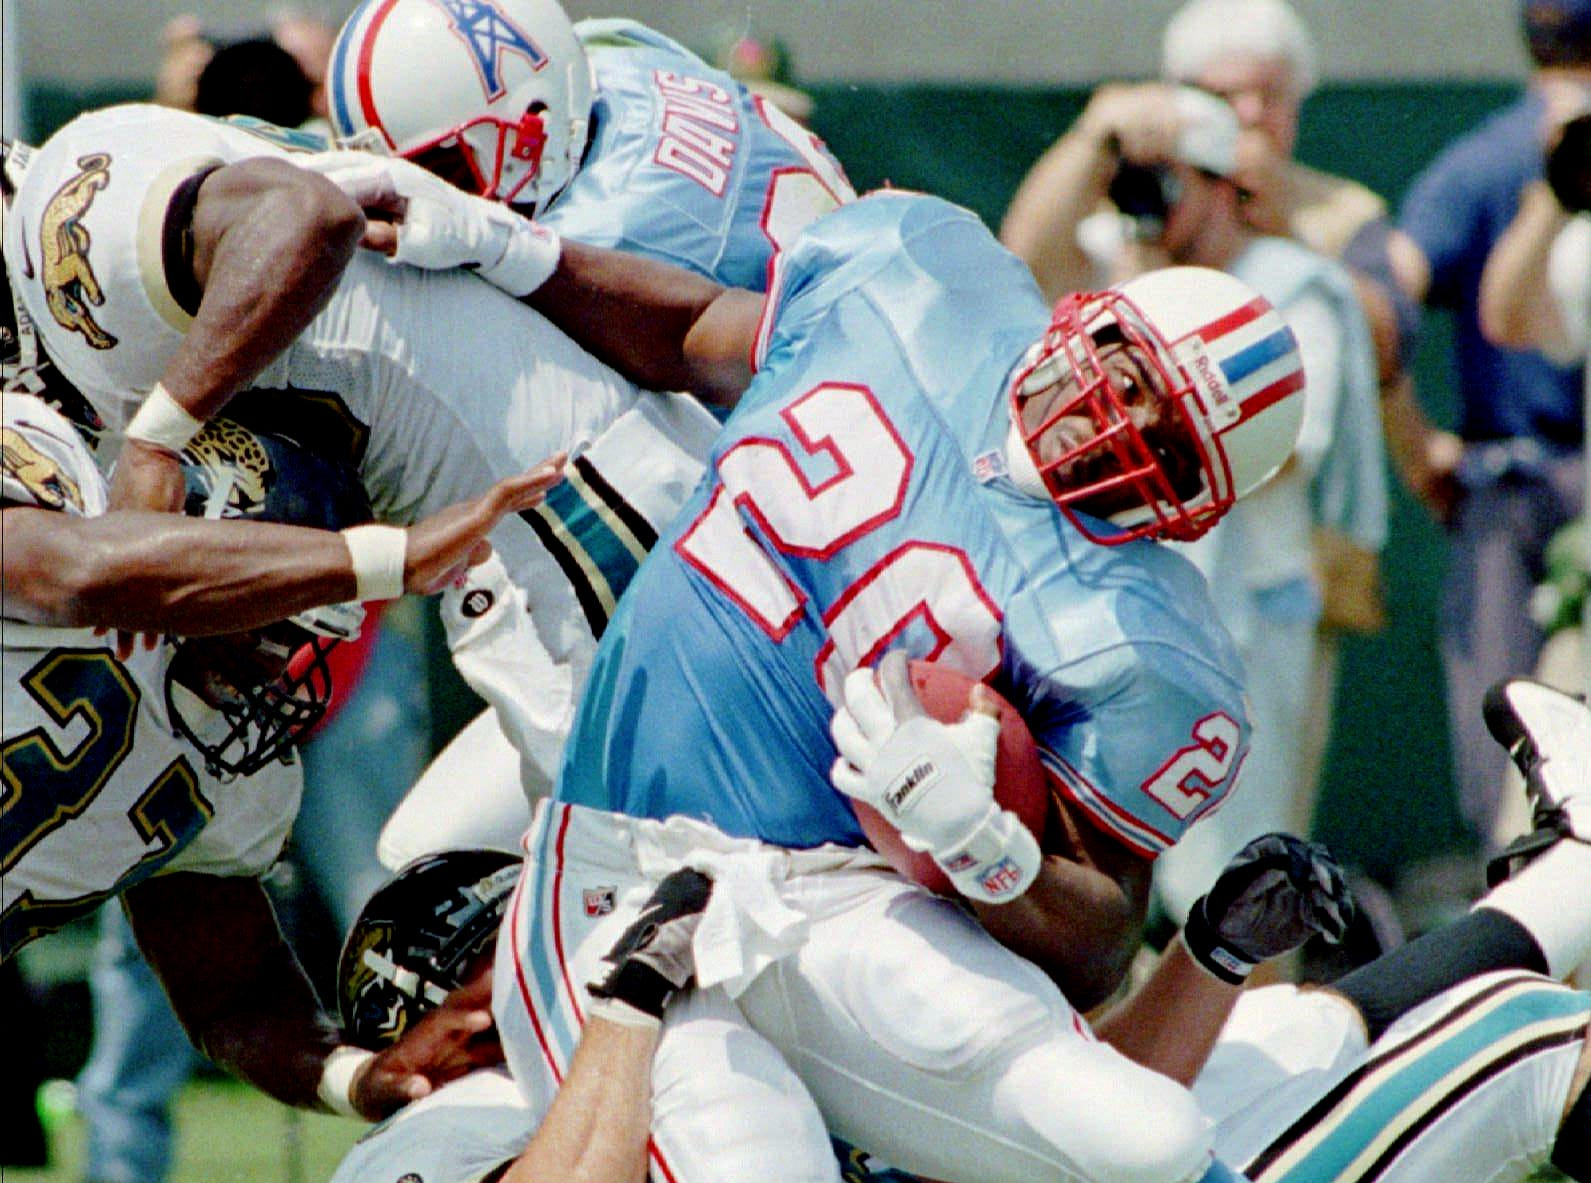 Houston Oilers running back Rodney Thomas (20) is grabbed by Jacksonville Jaguars middle linebacker Bryan Schwartz (58) after picking up six yards during the first quarter of their game Sept. 8, 1996 at Jacksonville Municipal Stadium in Jacksonville.